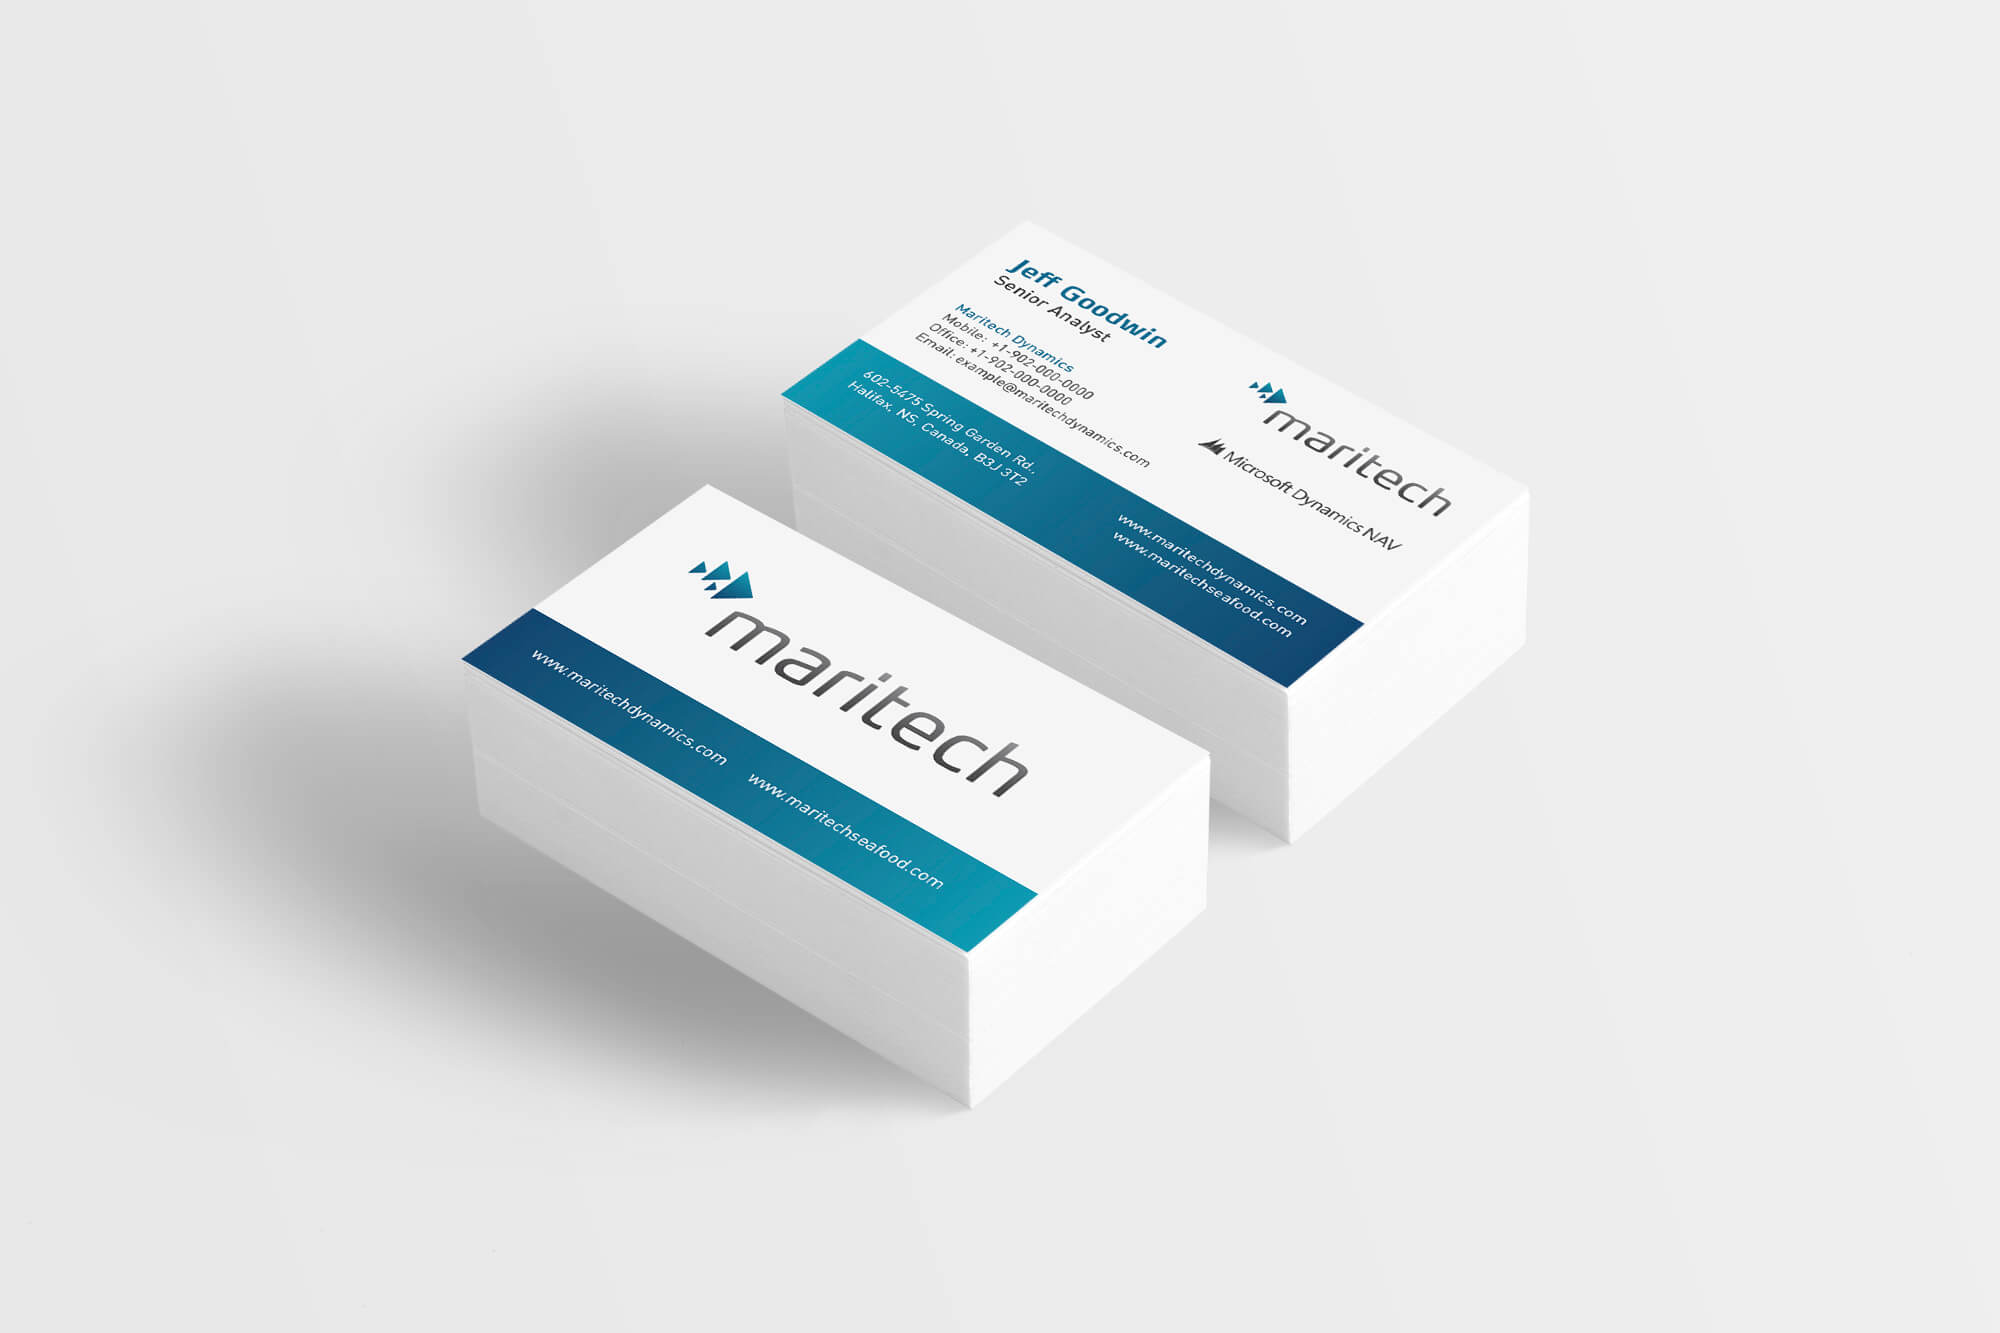 Business Card Design by Pivot